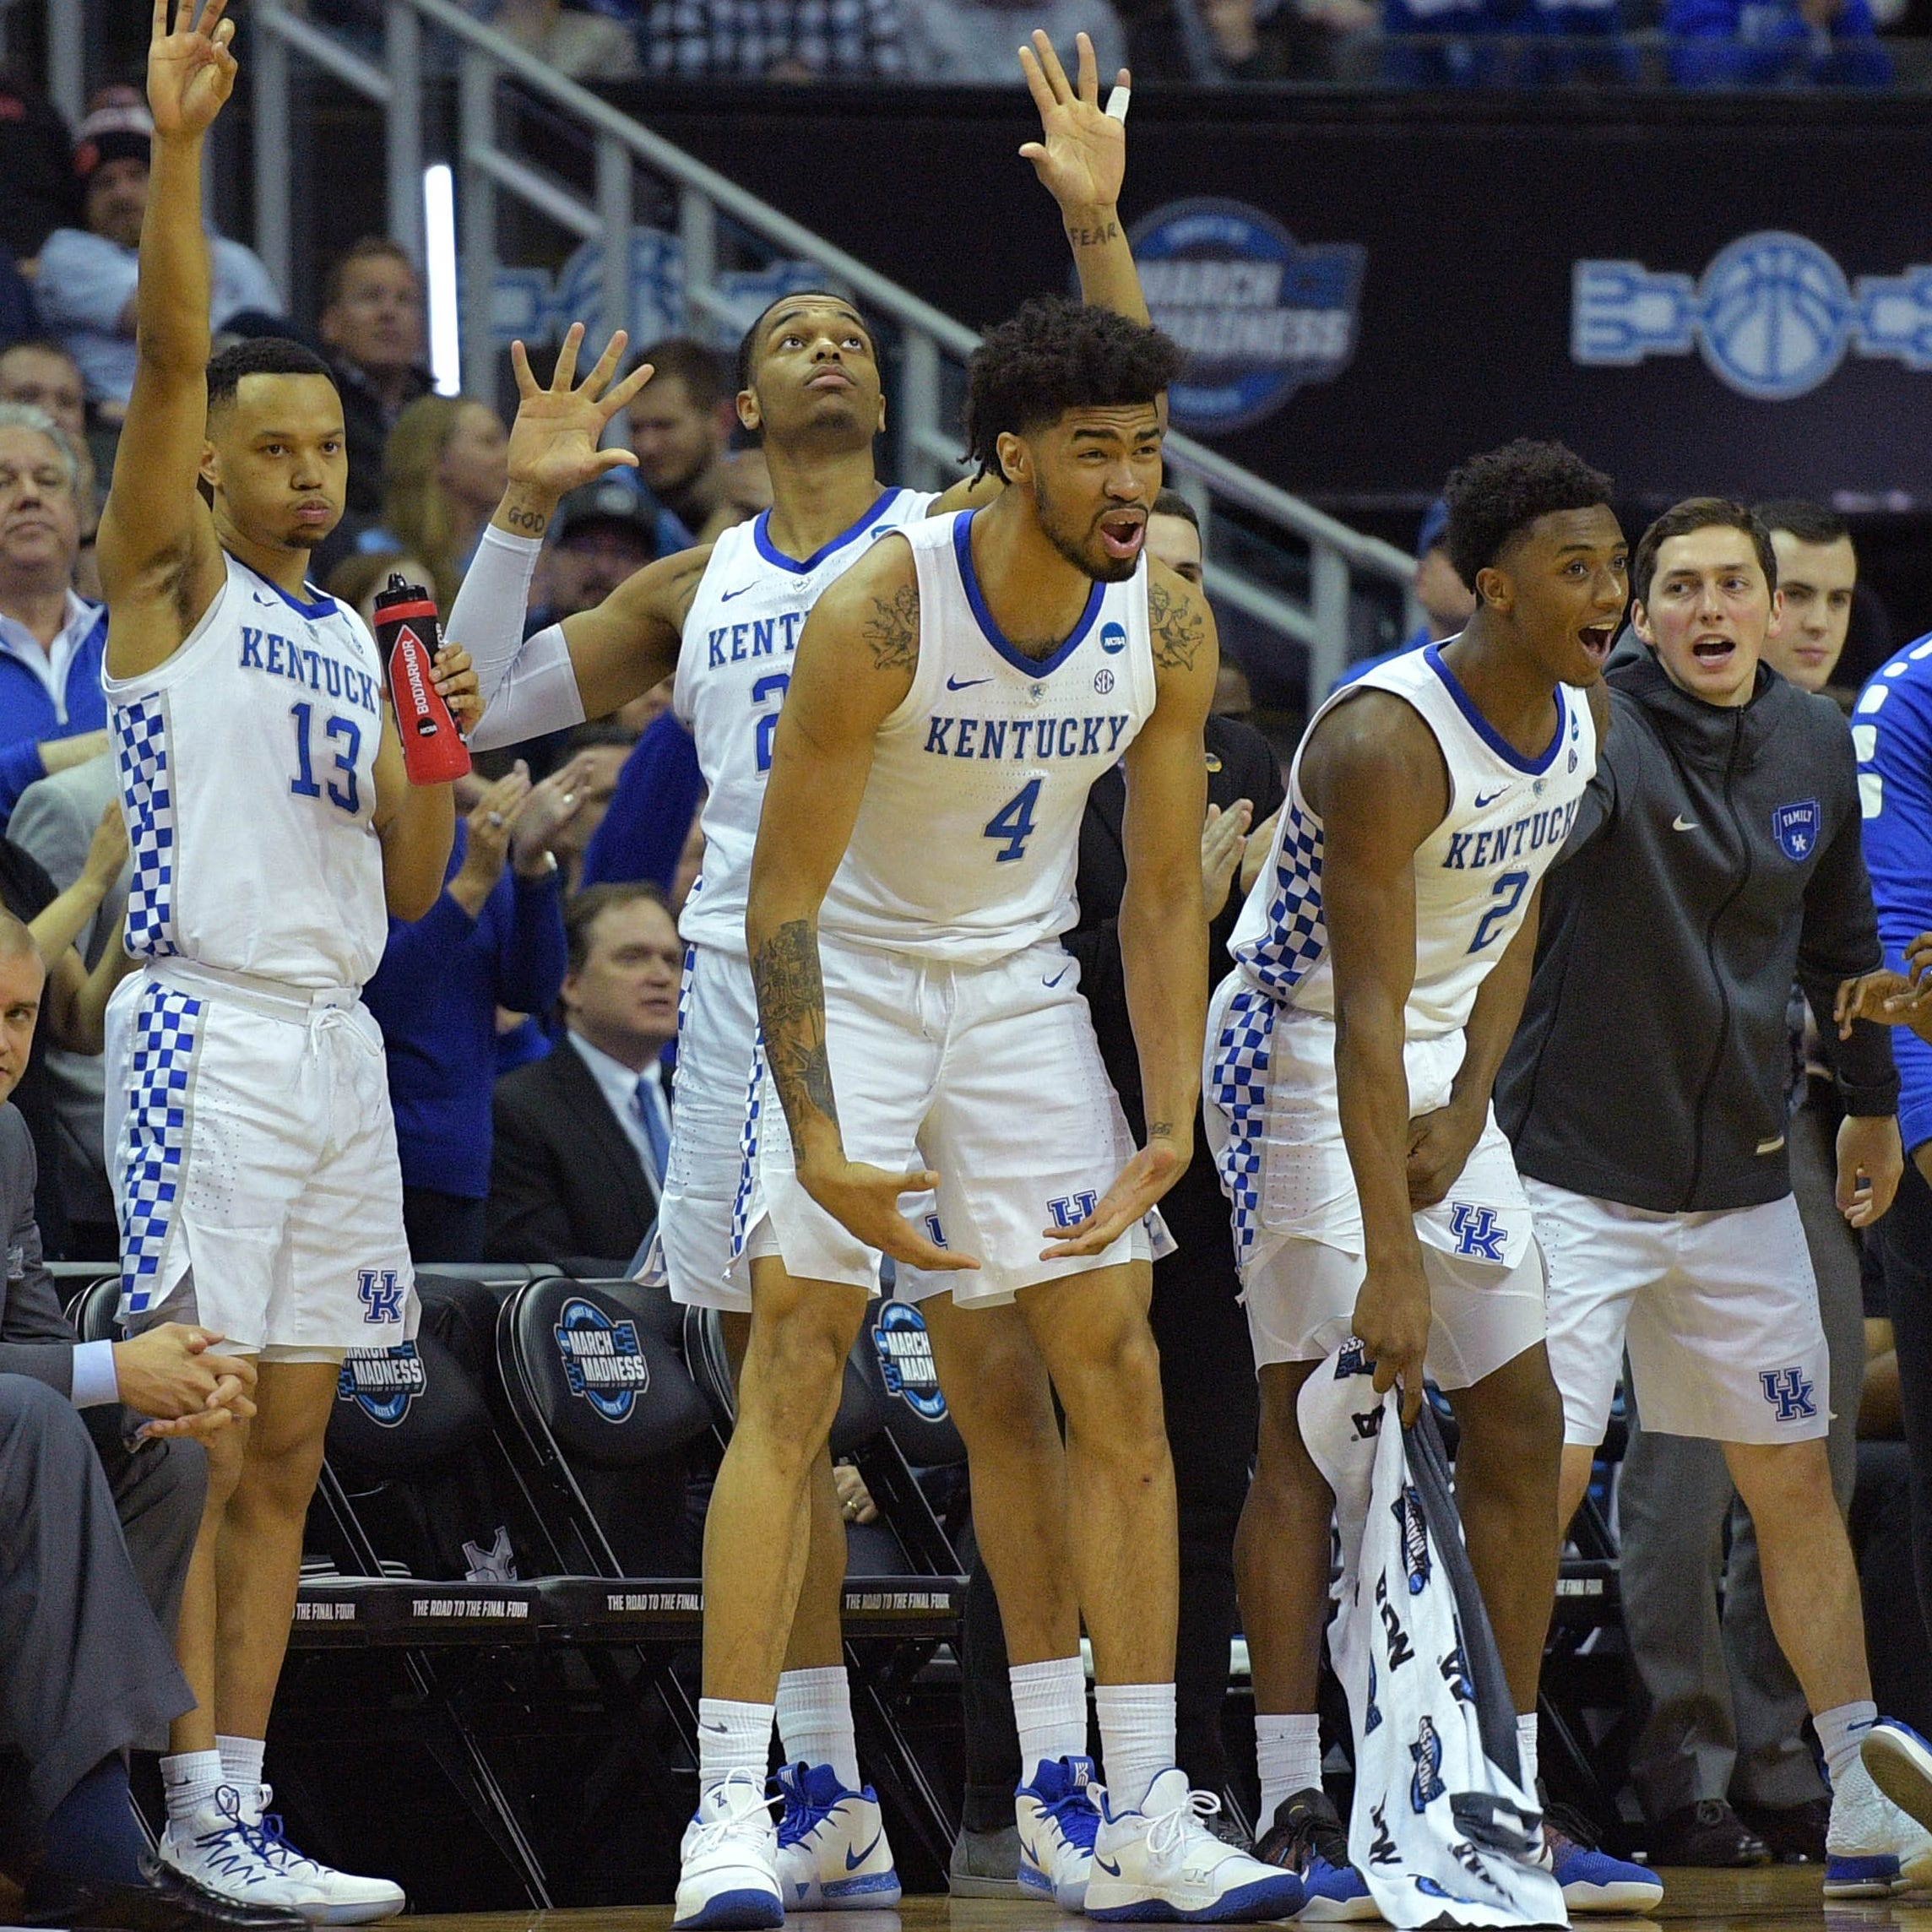 Kentucky-Auburn SEC showdown set for Sunday in NCAA Tournament Elite Eight